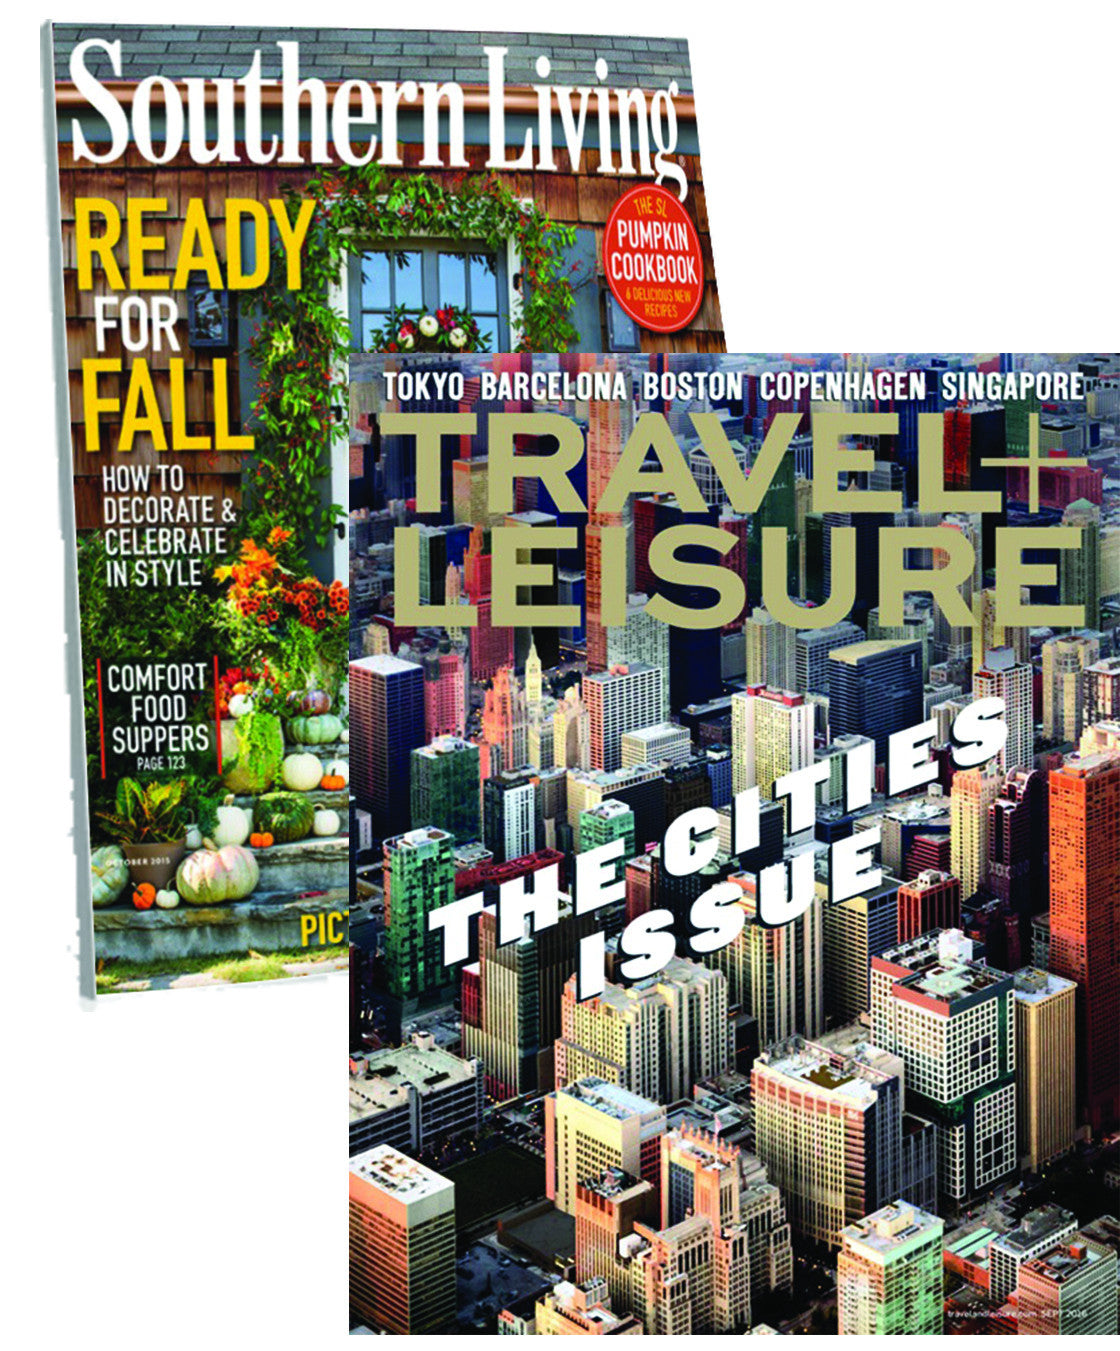 Travel Leisure Southern Living Combo Offer Magazine Subscription